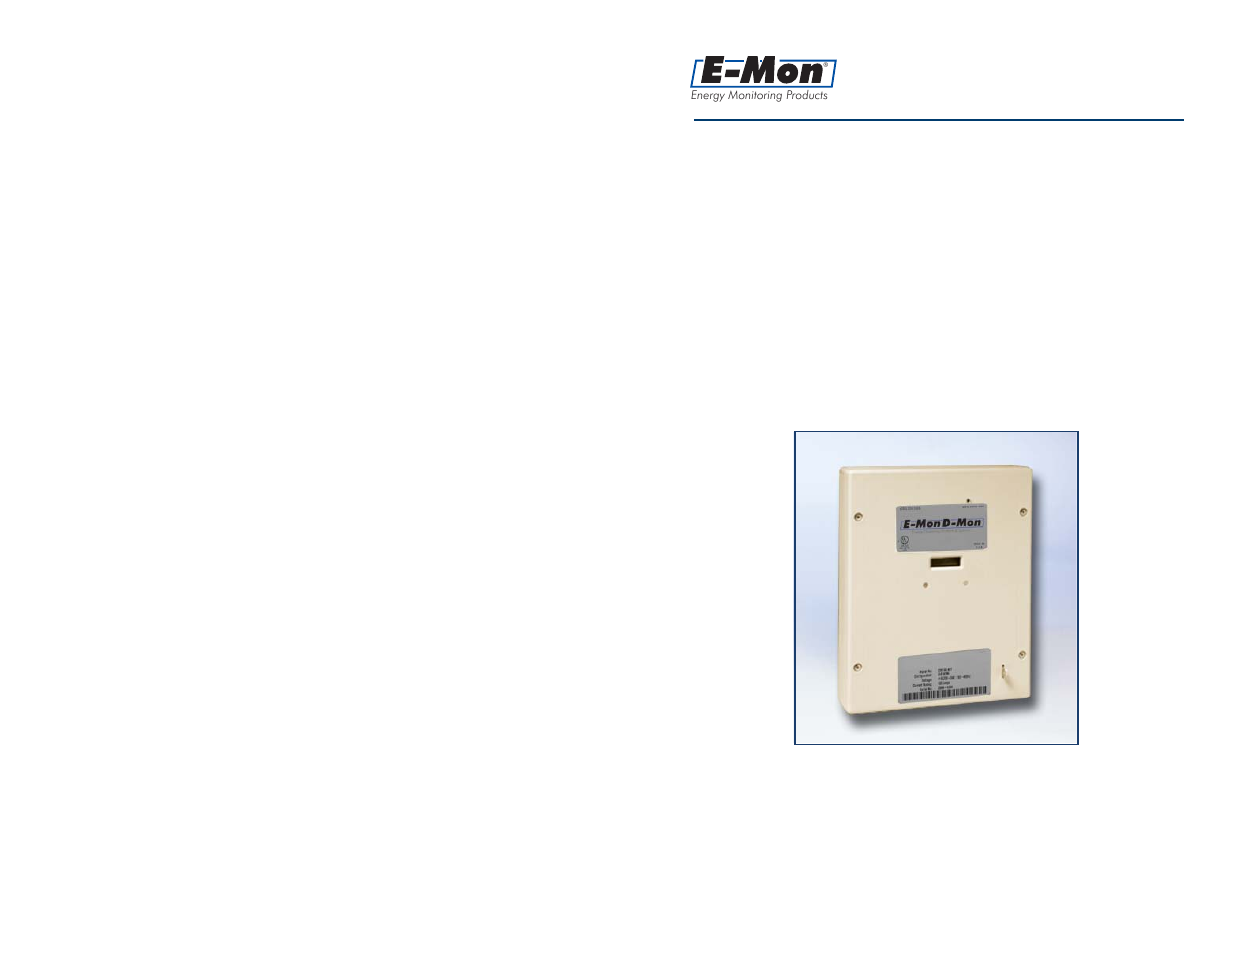 e mon 3208200w kit user manual 8 pages also for 3208100w kit rh manualsdir com E-Mon D-Mon MMU E-Mon D-Mon MMU